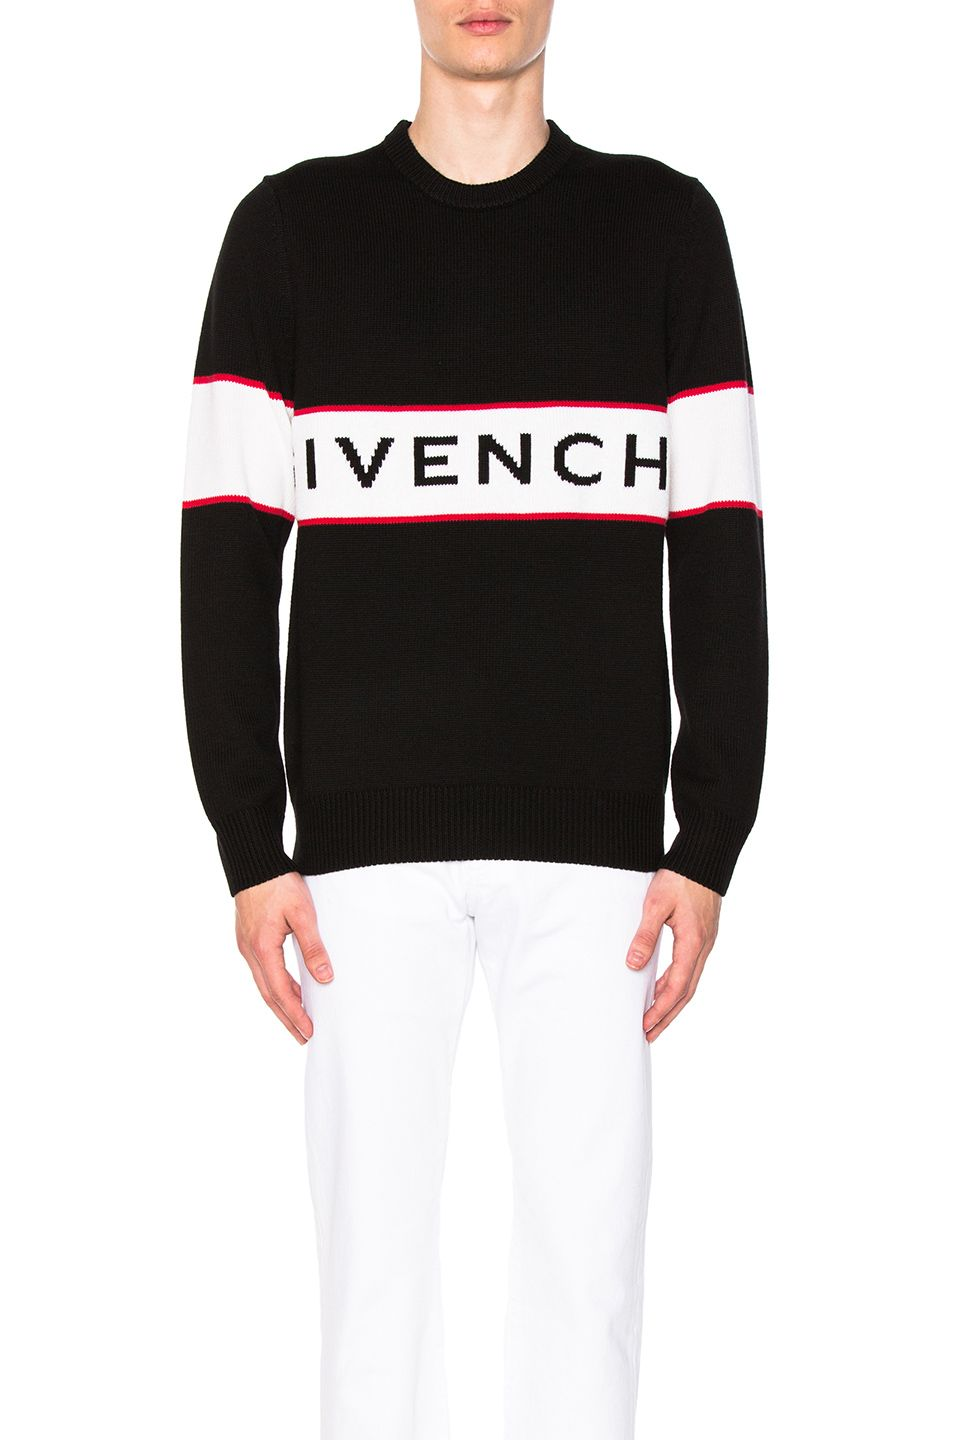 GIVENCHY GIVENCHY LOGO KNIT SWEATER IN BLACK.  givenchy  cloth ... a5ed80bc0523